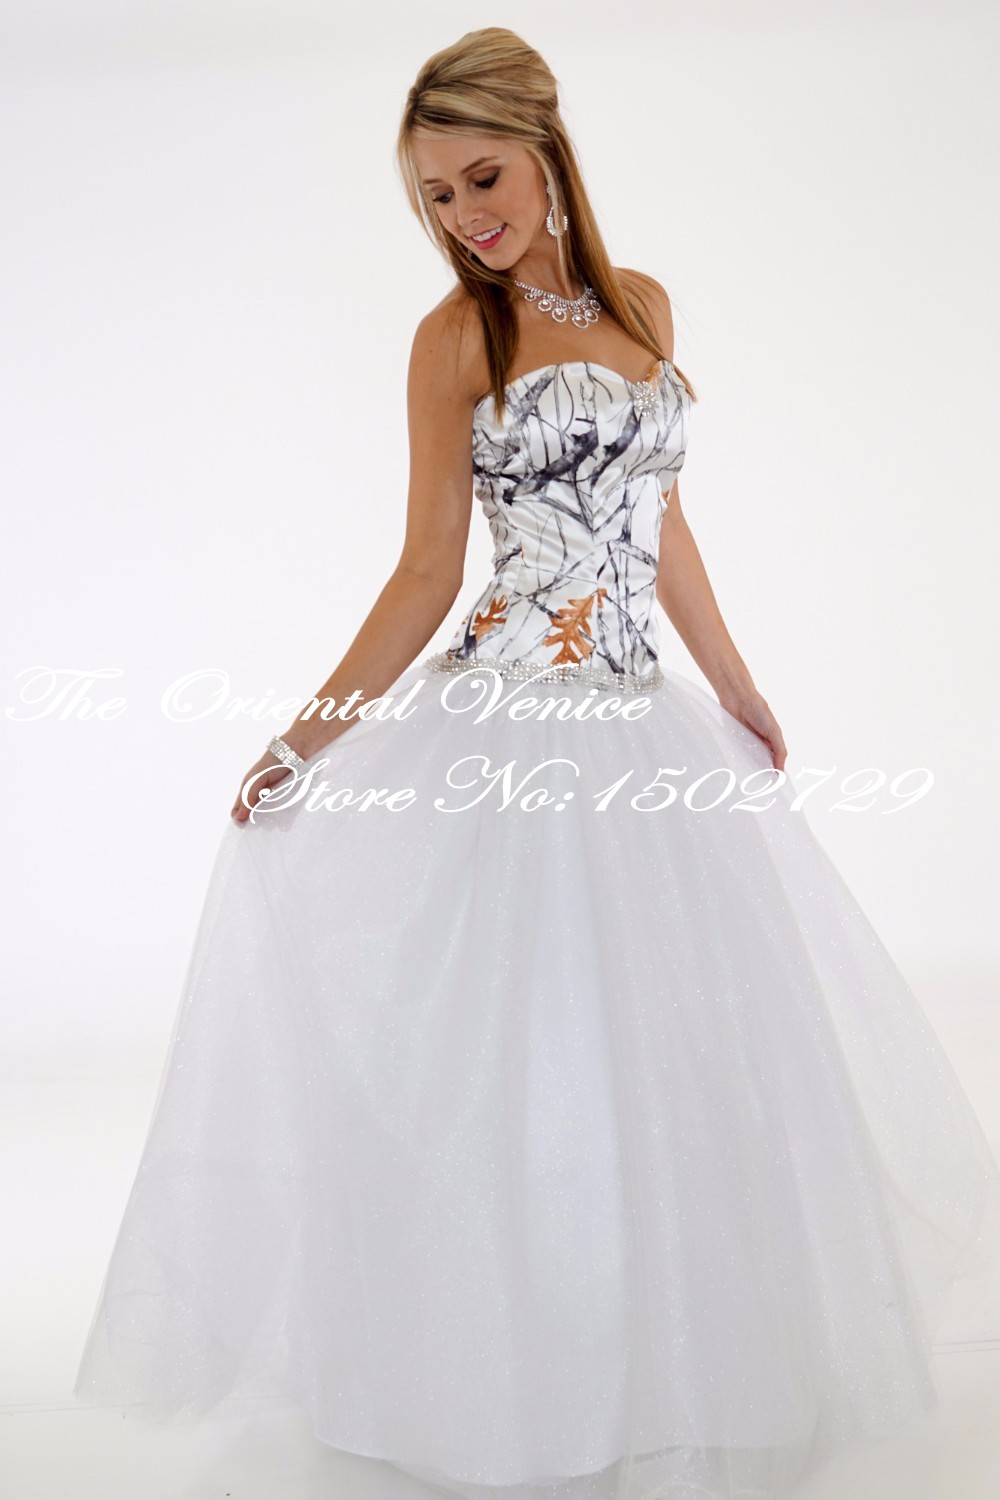 8f5a1c1d10650 Cheap Camo Wedding Dresses Under $100 - PostParc